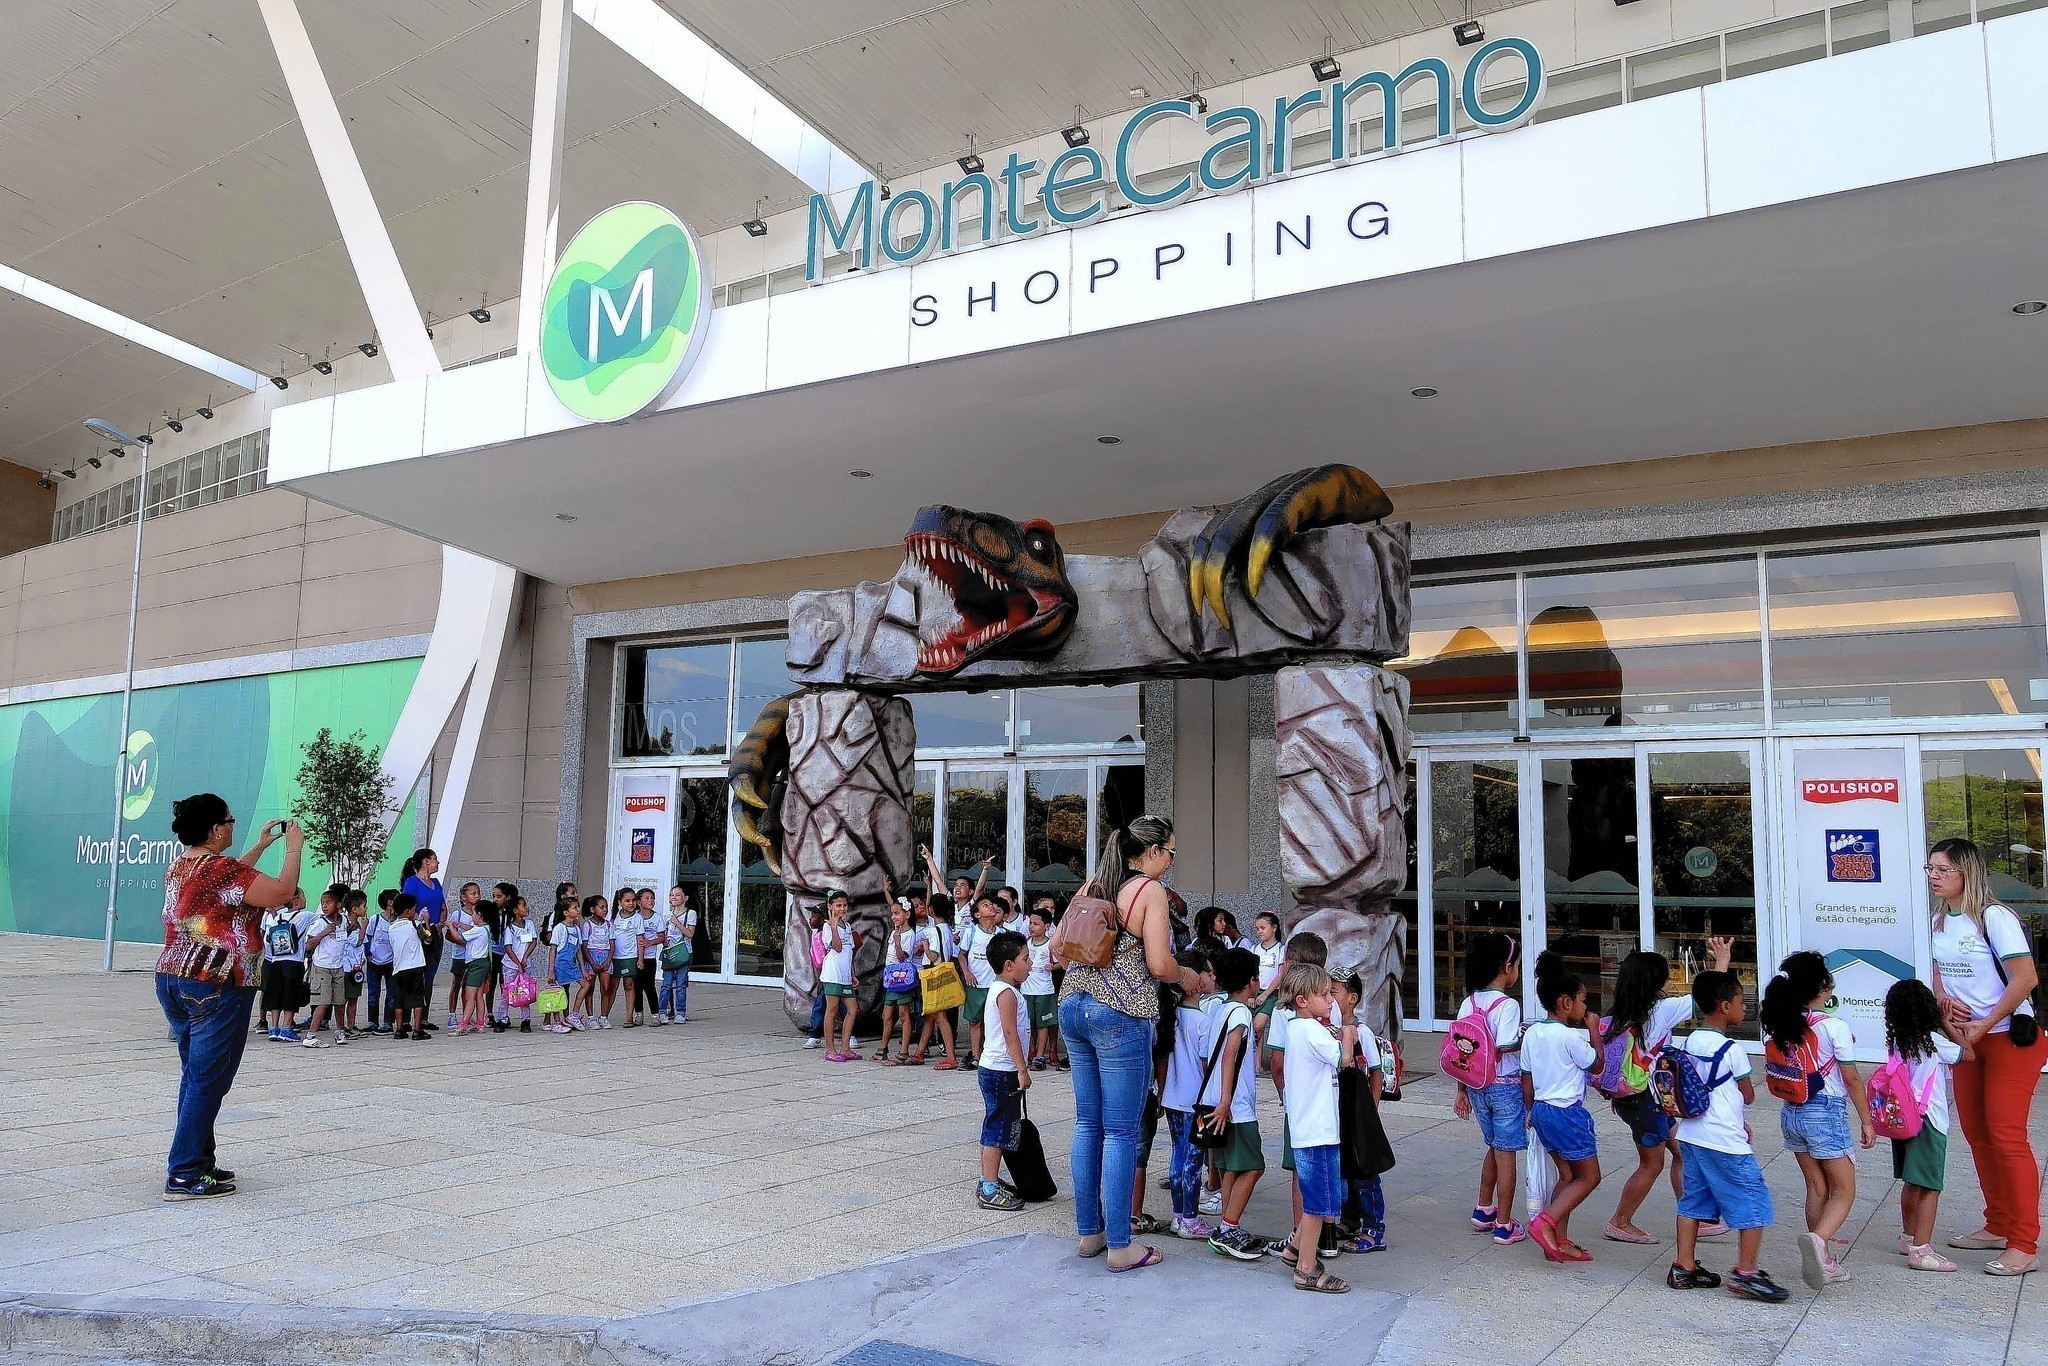 Huge shopping malls change landscape of Brazil